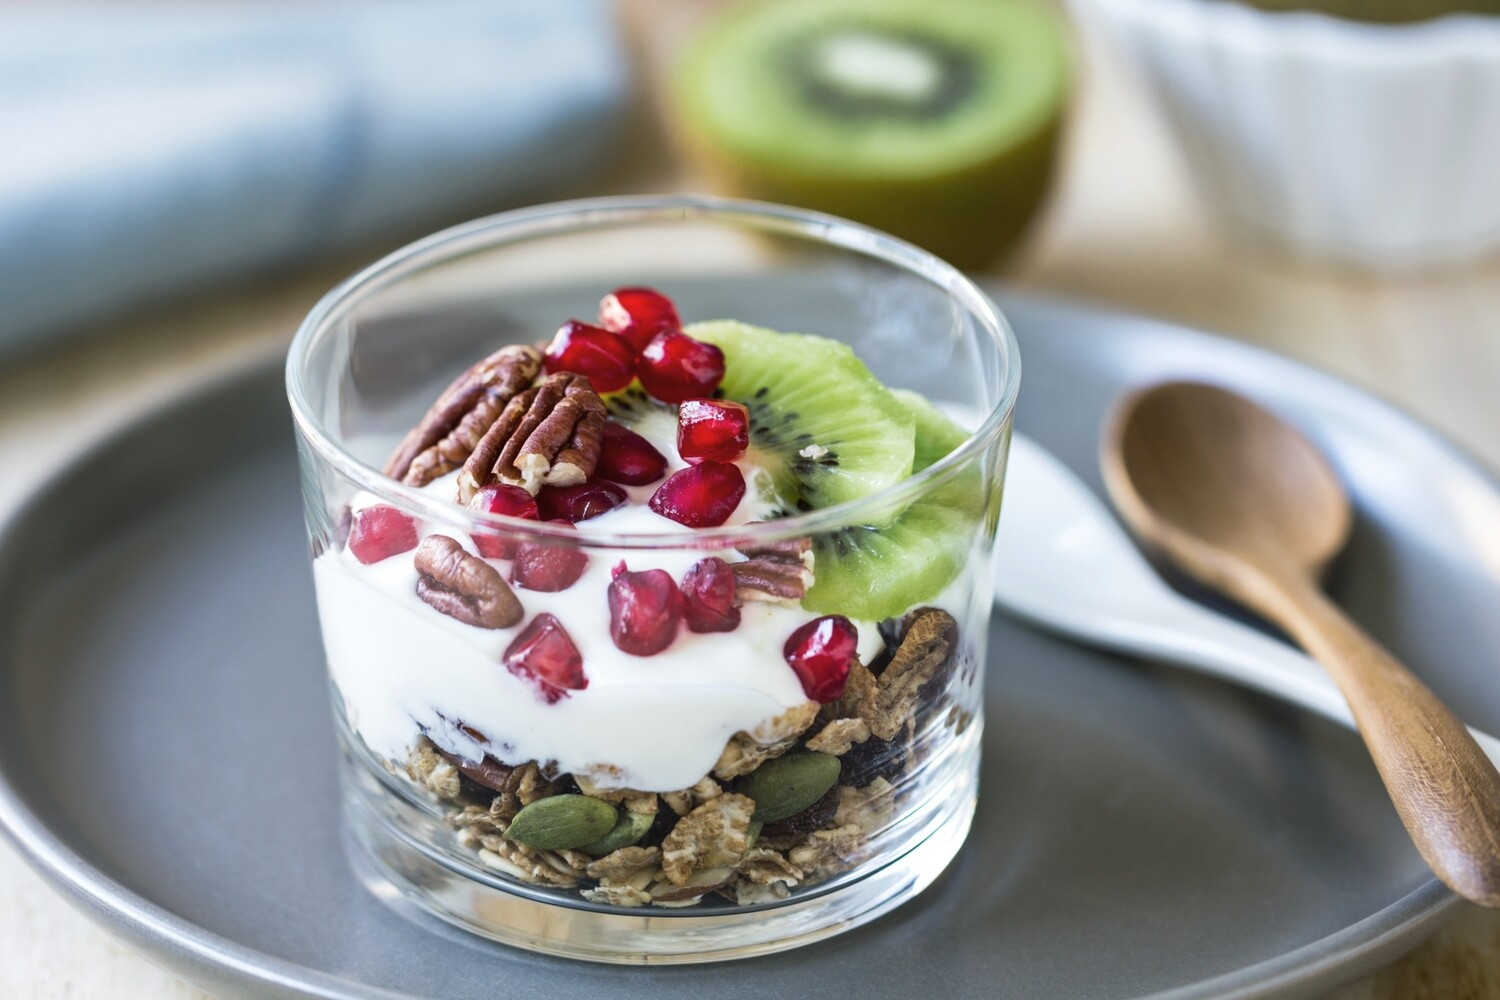 Forever Weight loss  - the Healthy Way